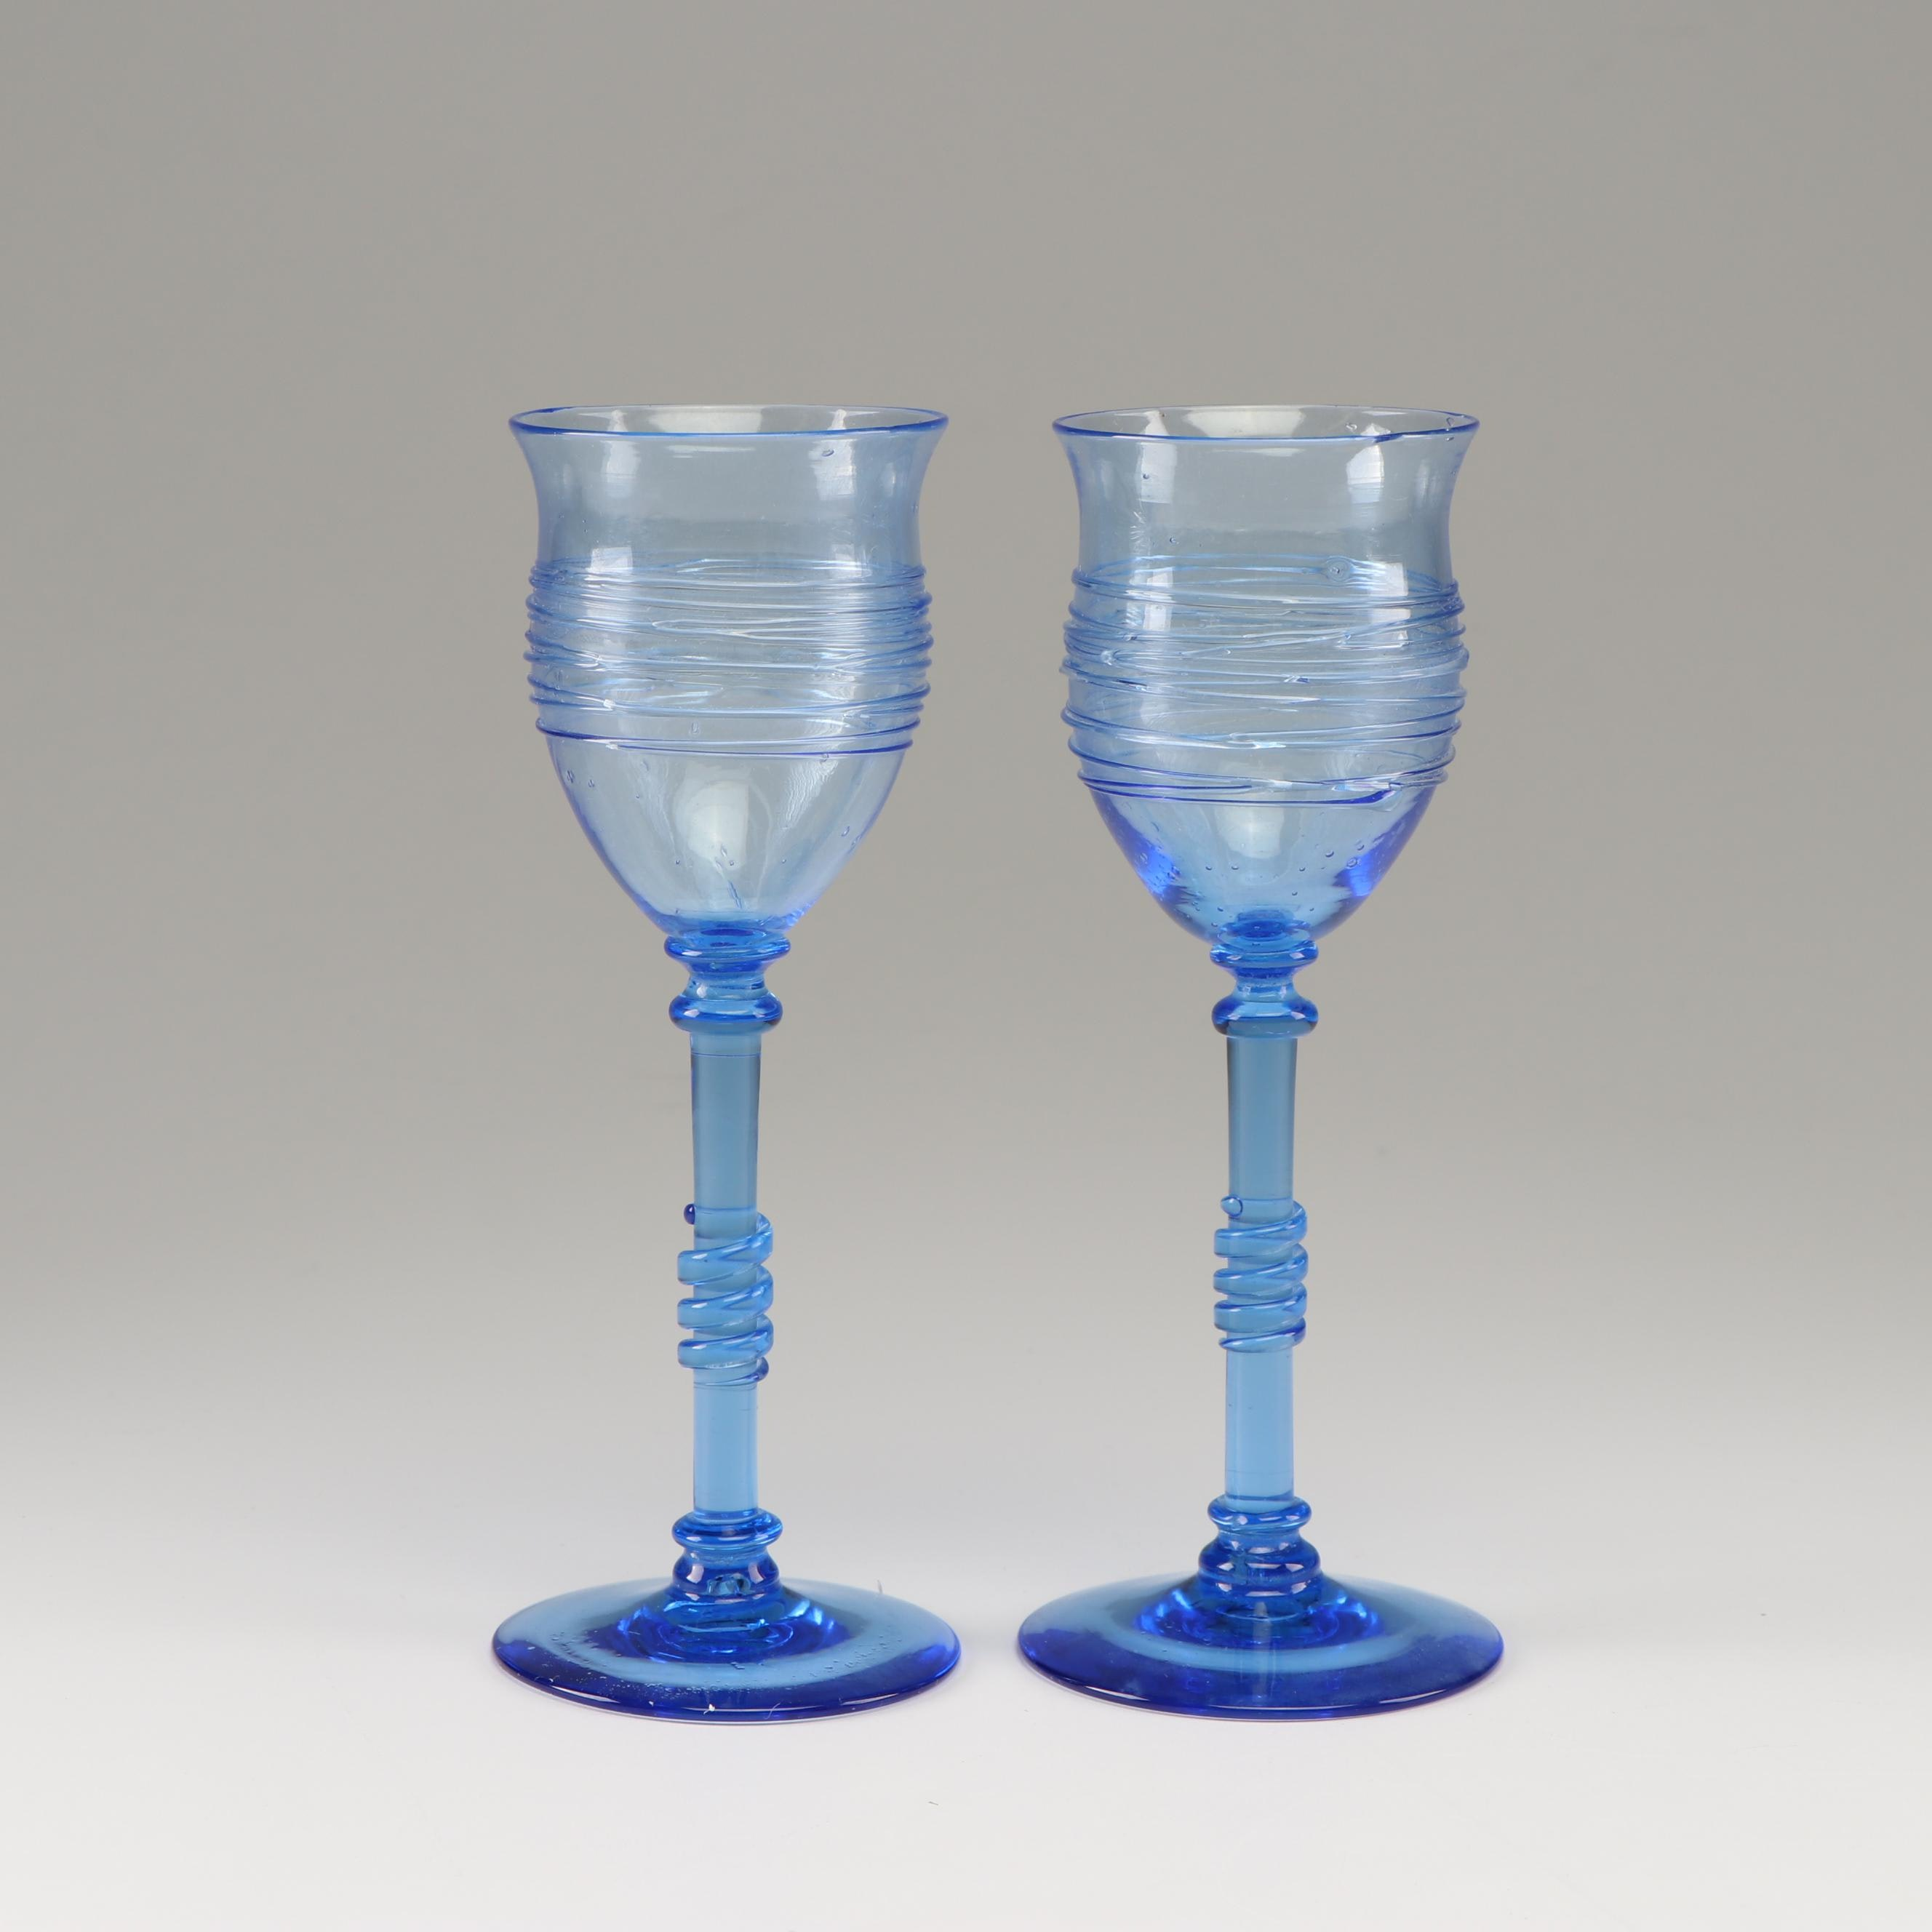 Frederick Carder Steuben French Blue Reeded Stemware